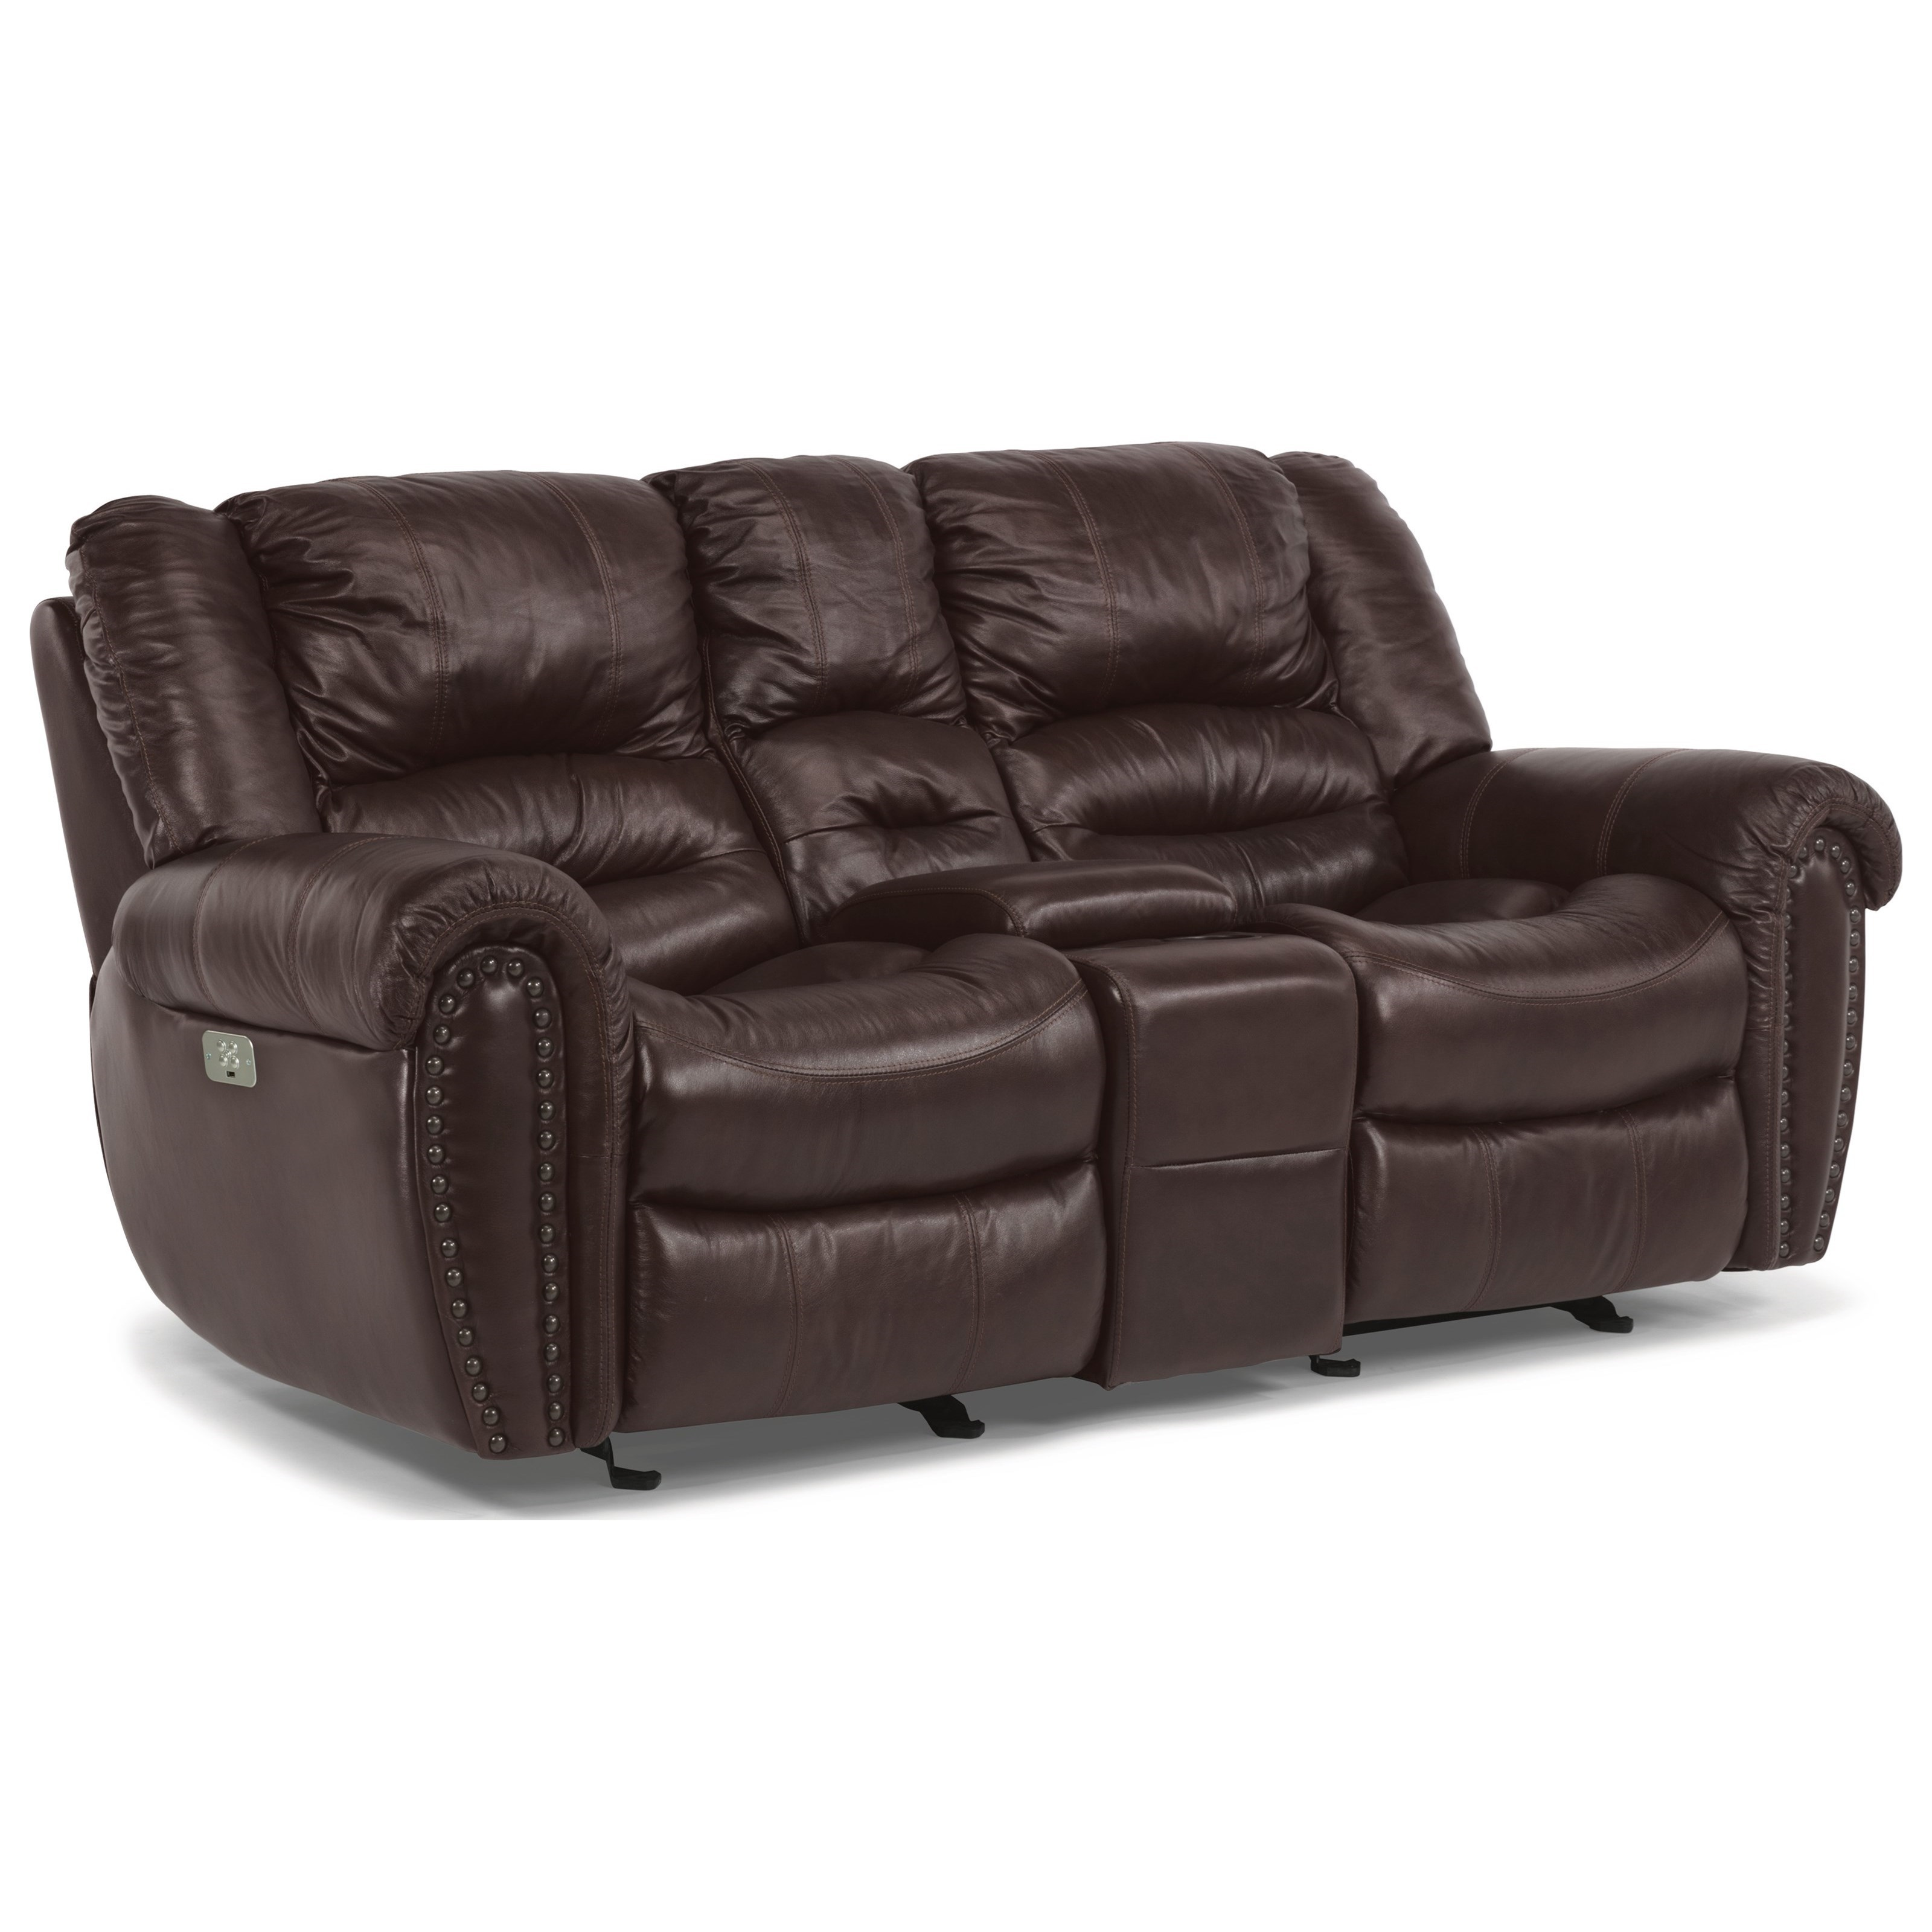 Latitudes - Town Power Reclining Console Love Seat by Flexsteel at Johnny Janosik